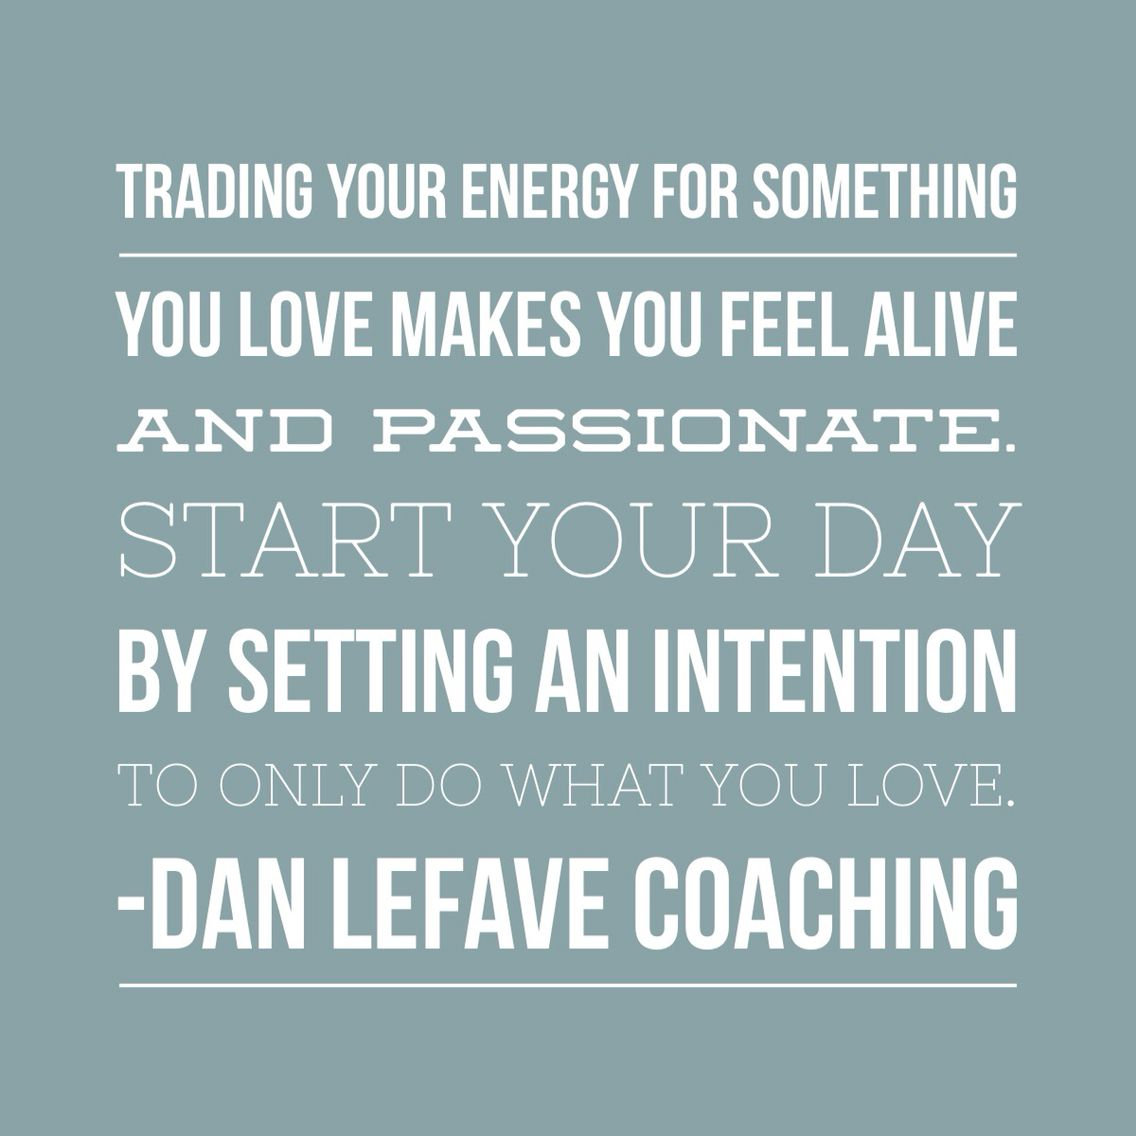 Trading your energy for something you love makes you feel alive and passionate. Start your day by setting an intention to only do what you love.